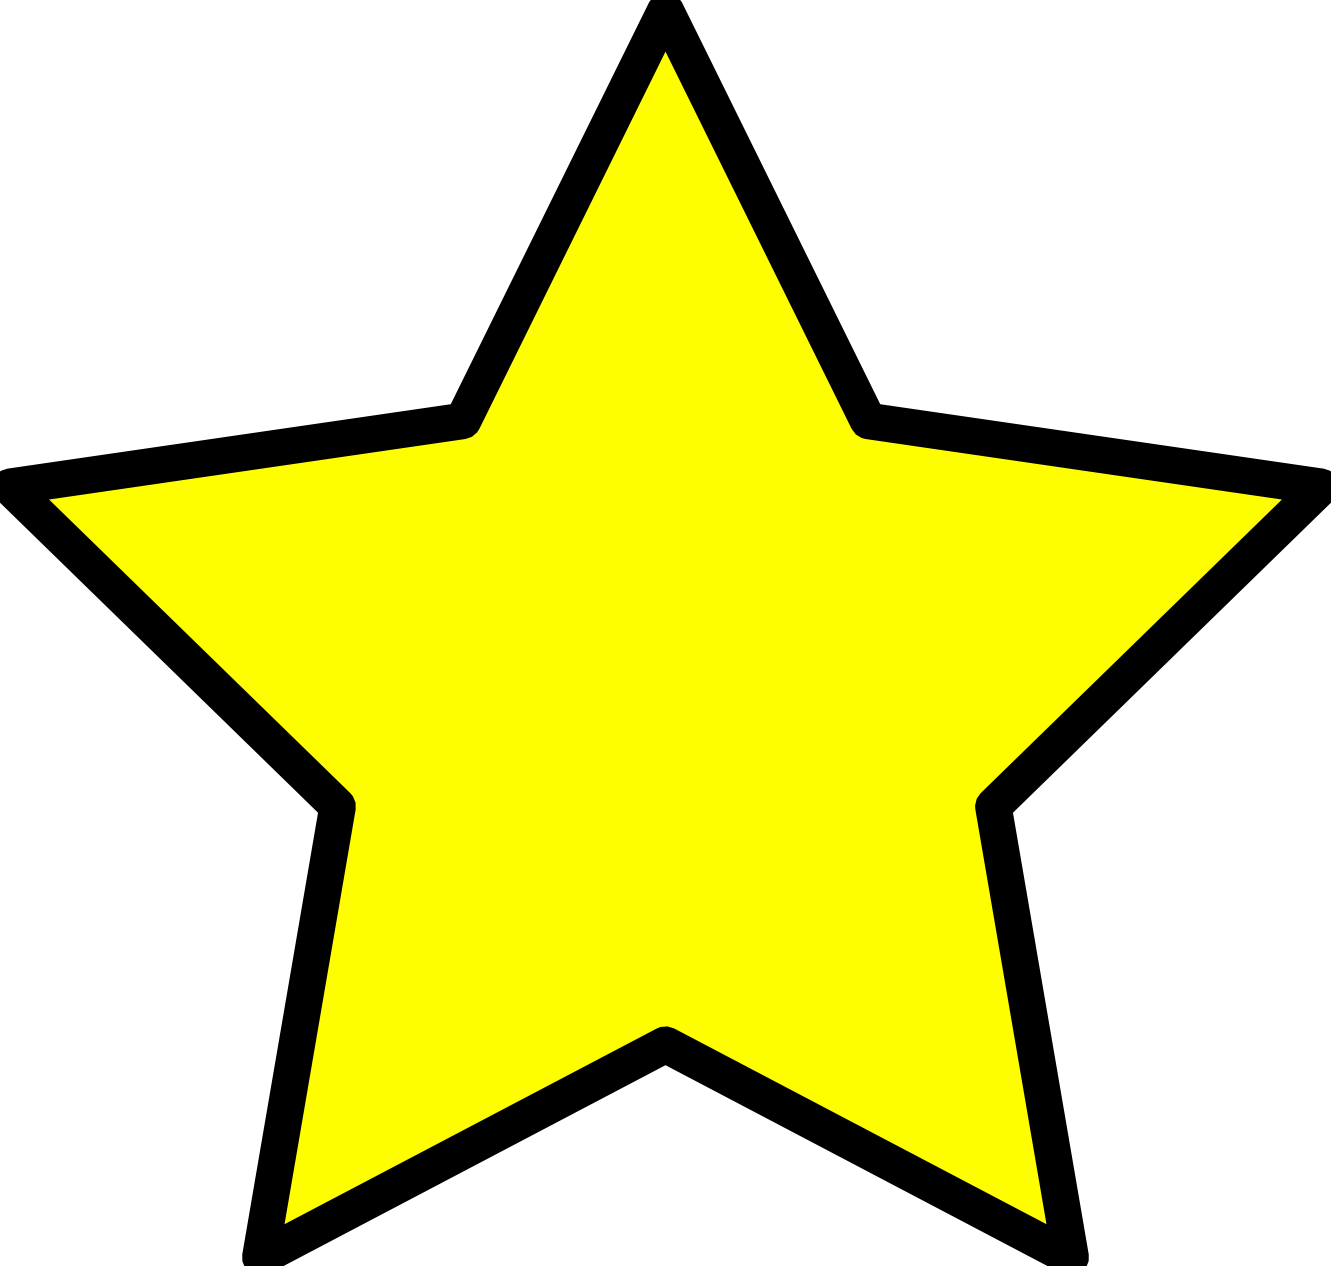 Free Yellow Star, Download Free Clip Art, Free Clip Art on Clipart.